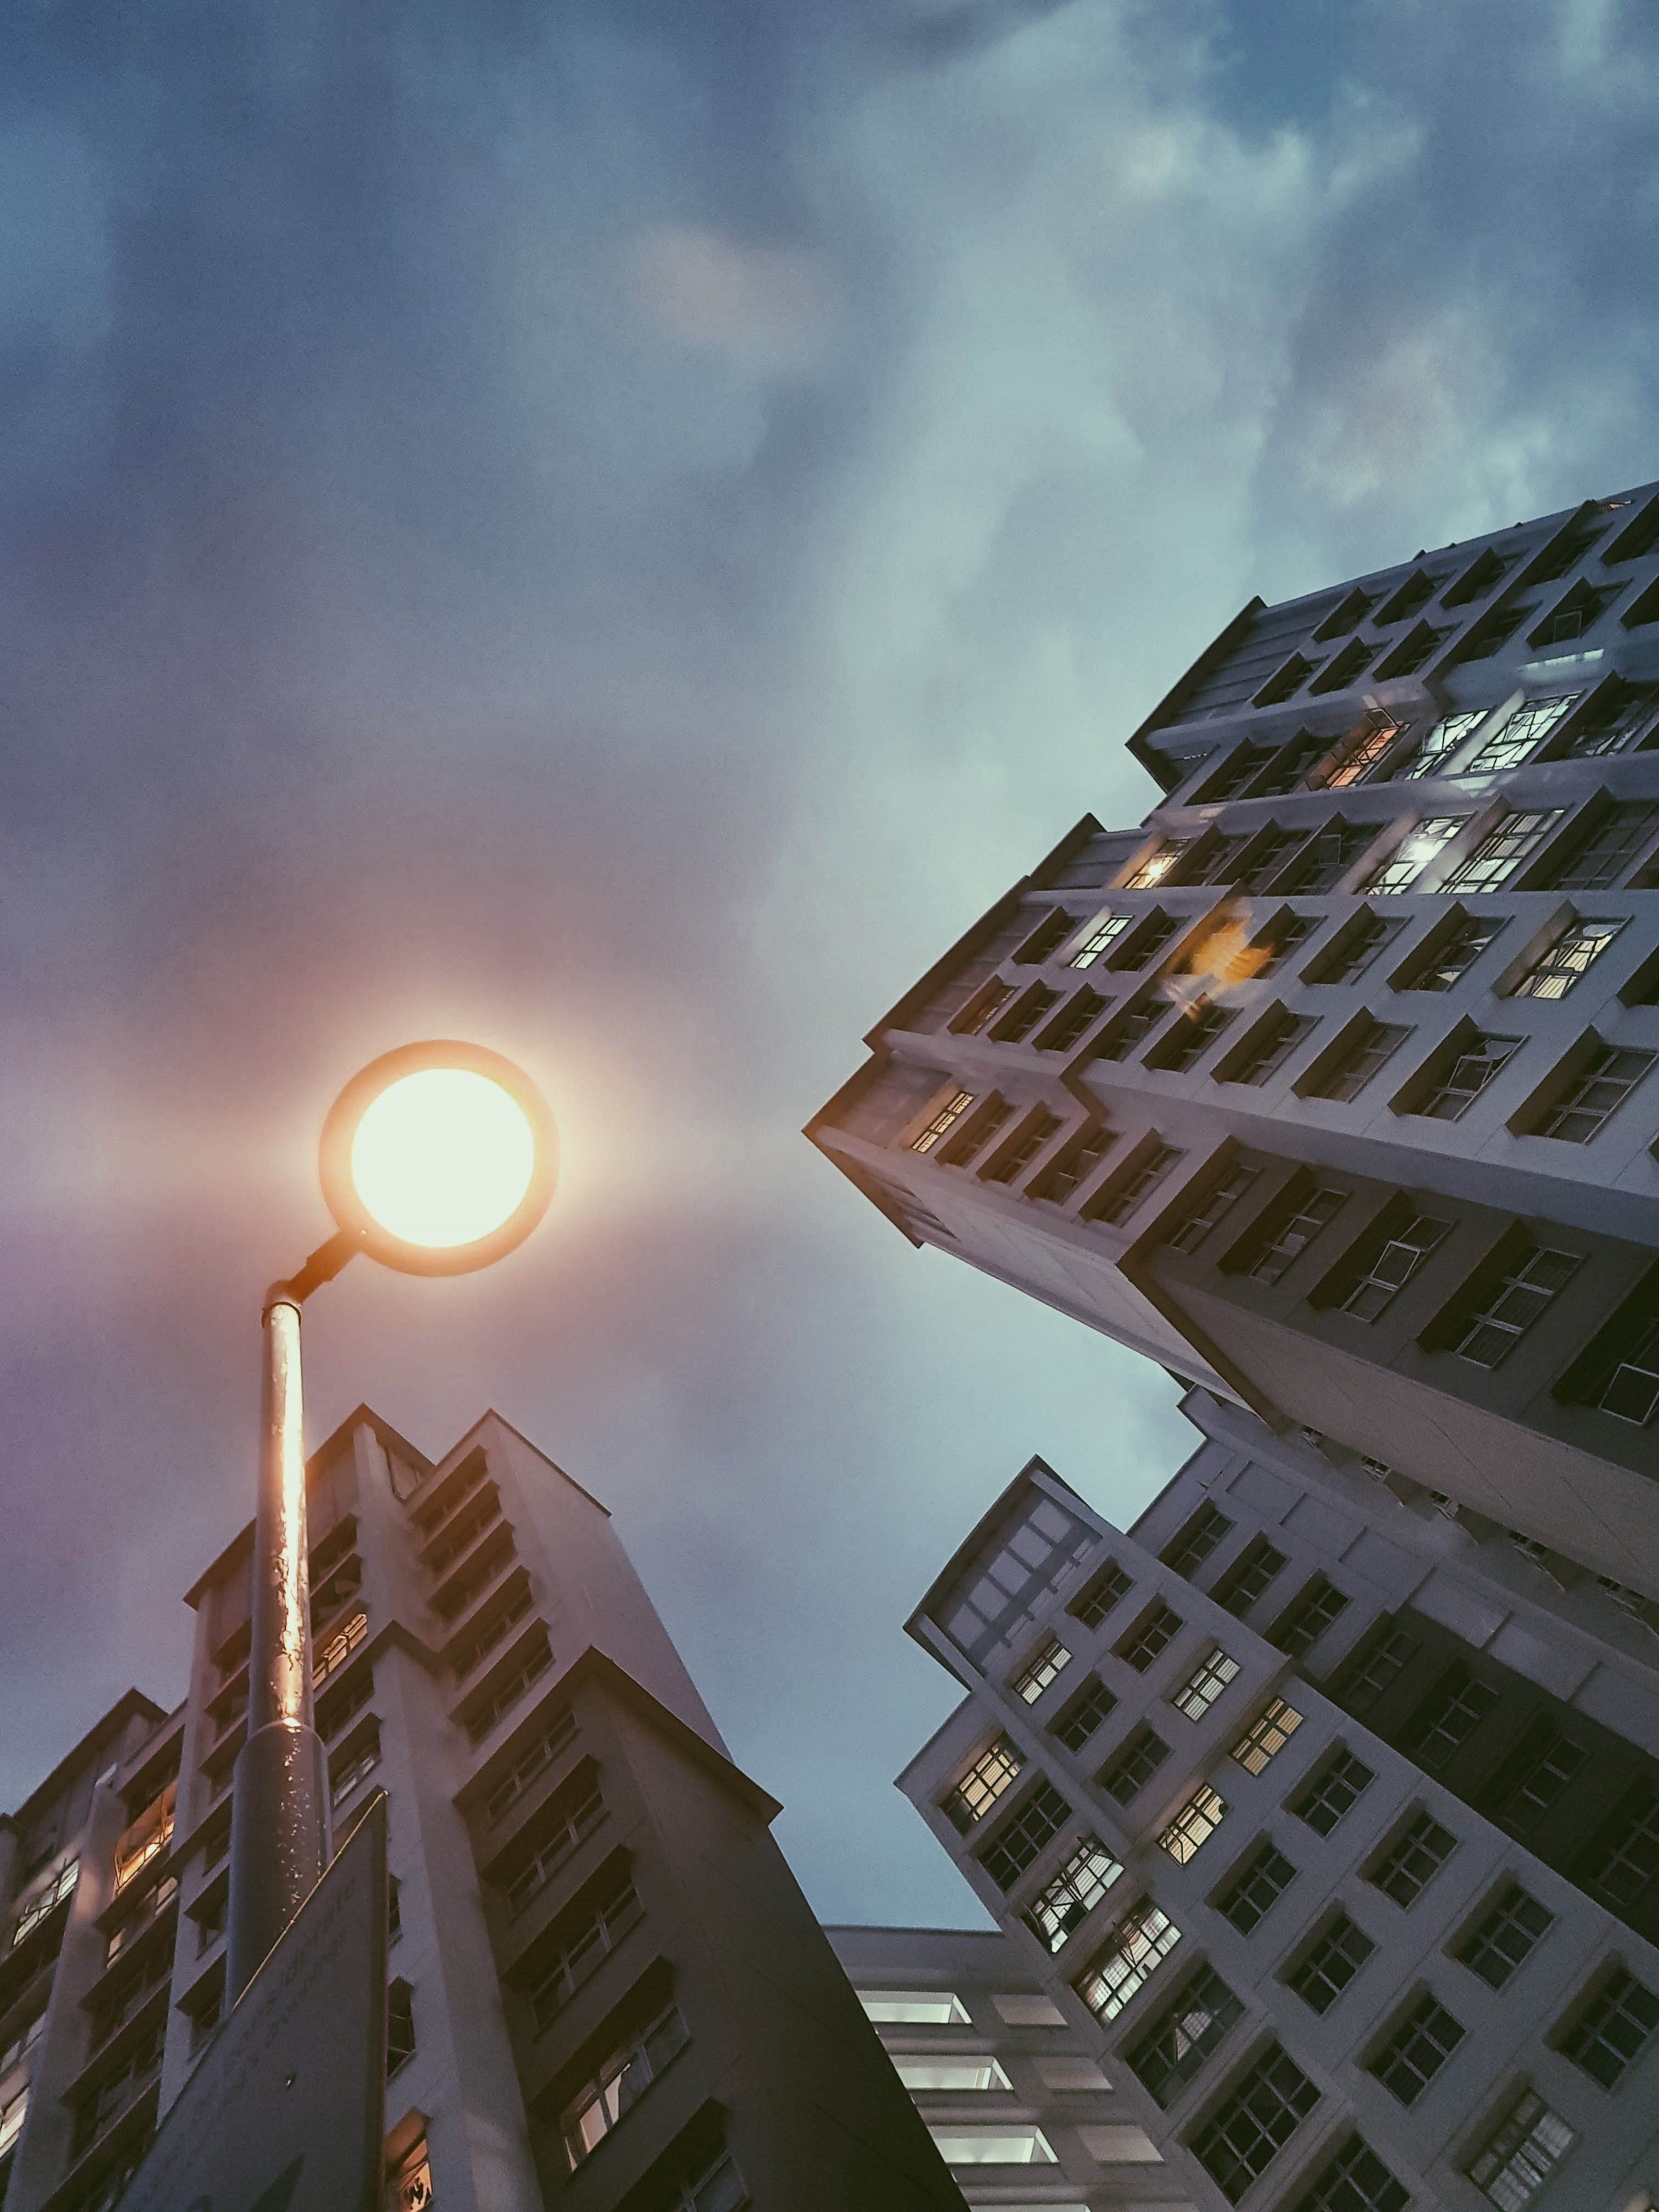 Low Angle Photography of Lamp Post Beside Building Under Cloudy Sky